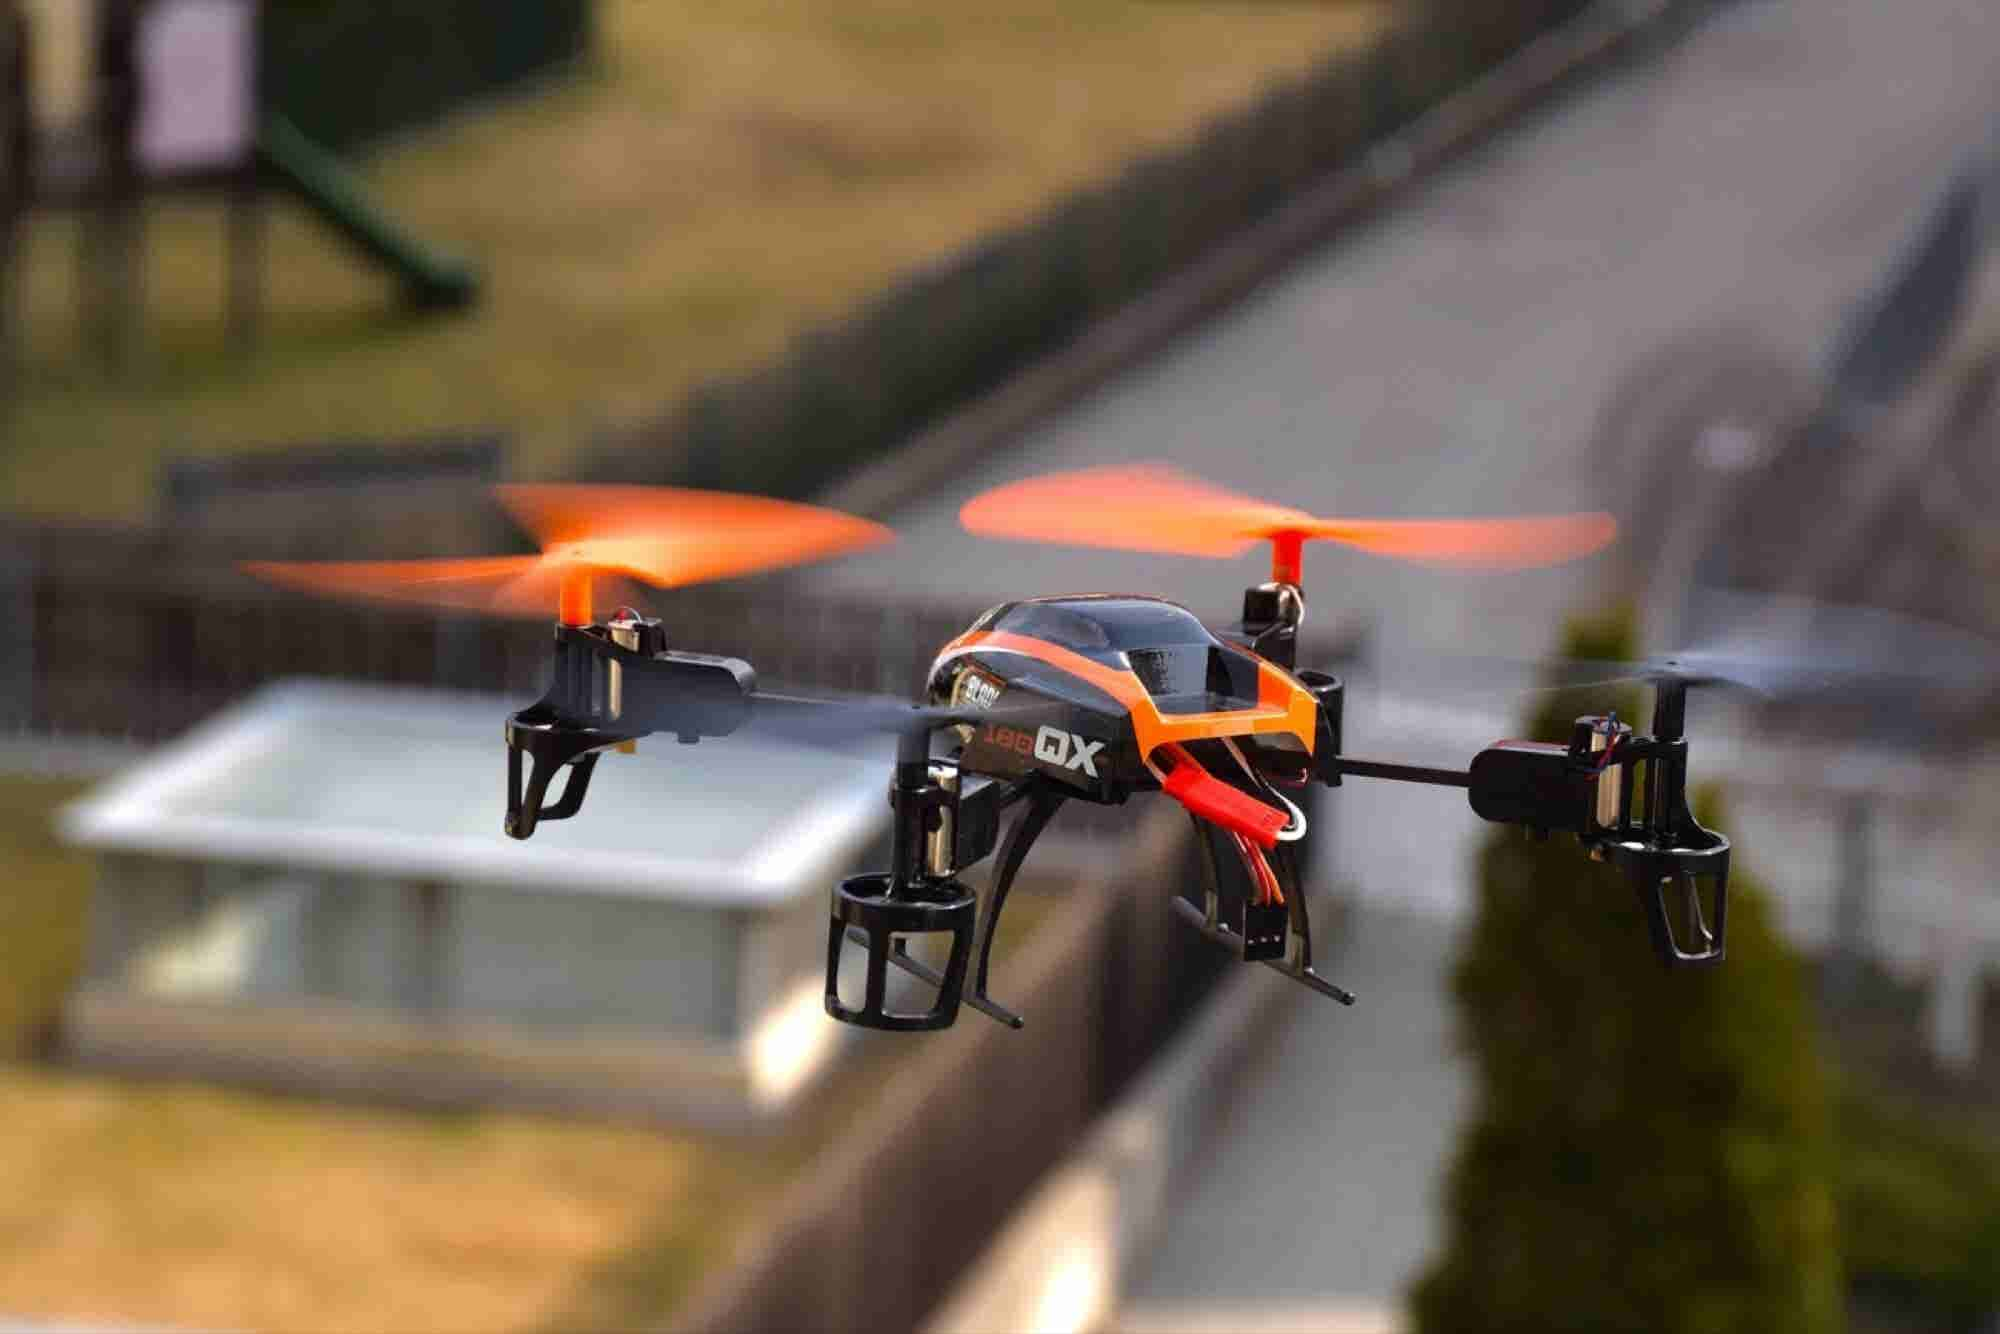 Man Arrested After Crashing Drone at U.S. Open